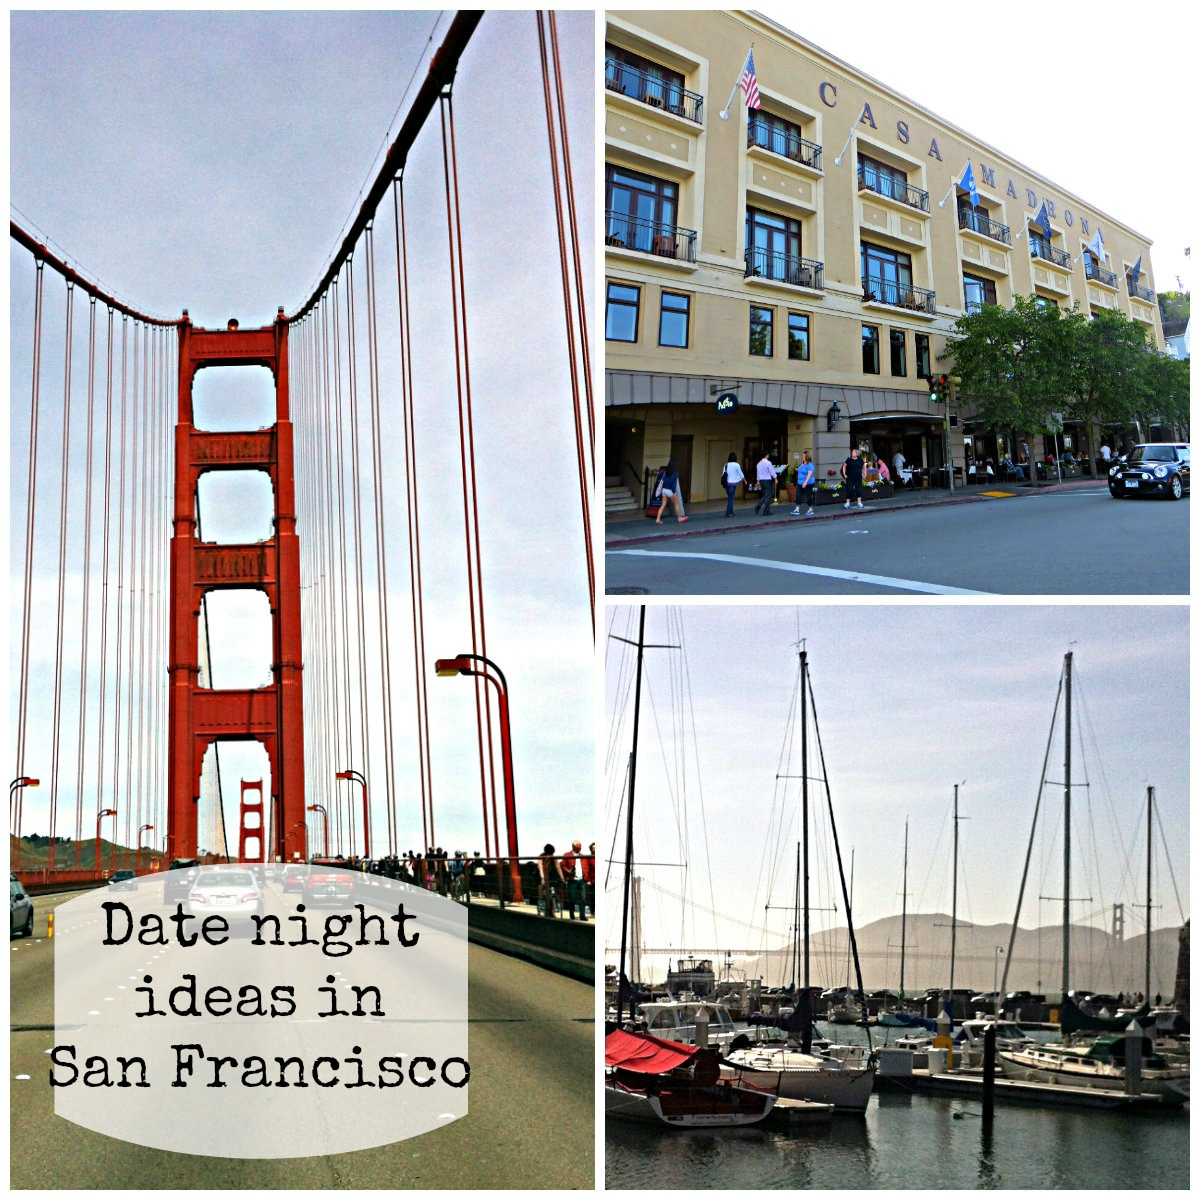 San francisco date ideas